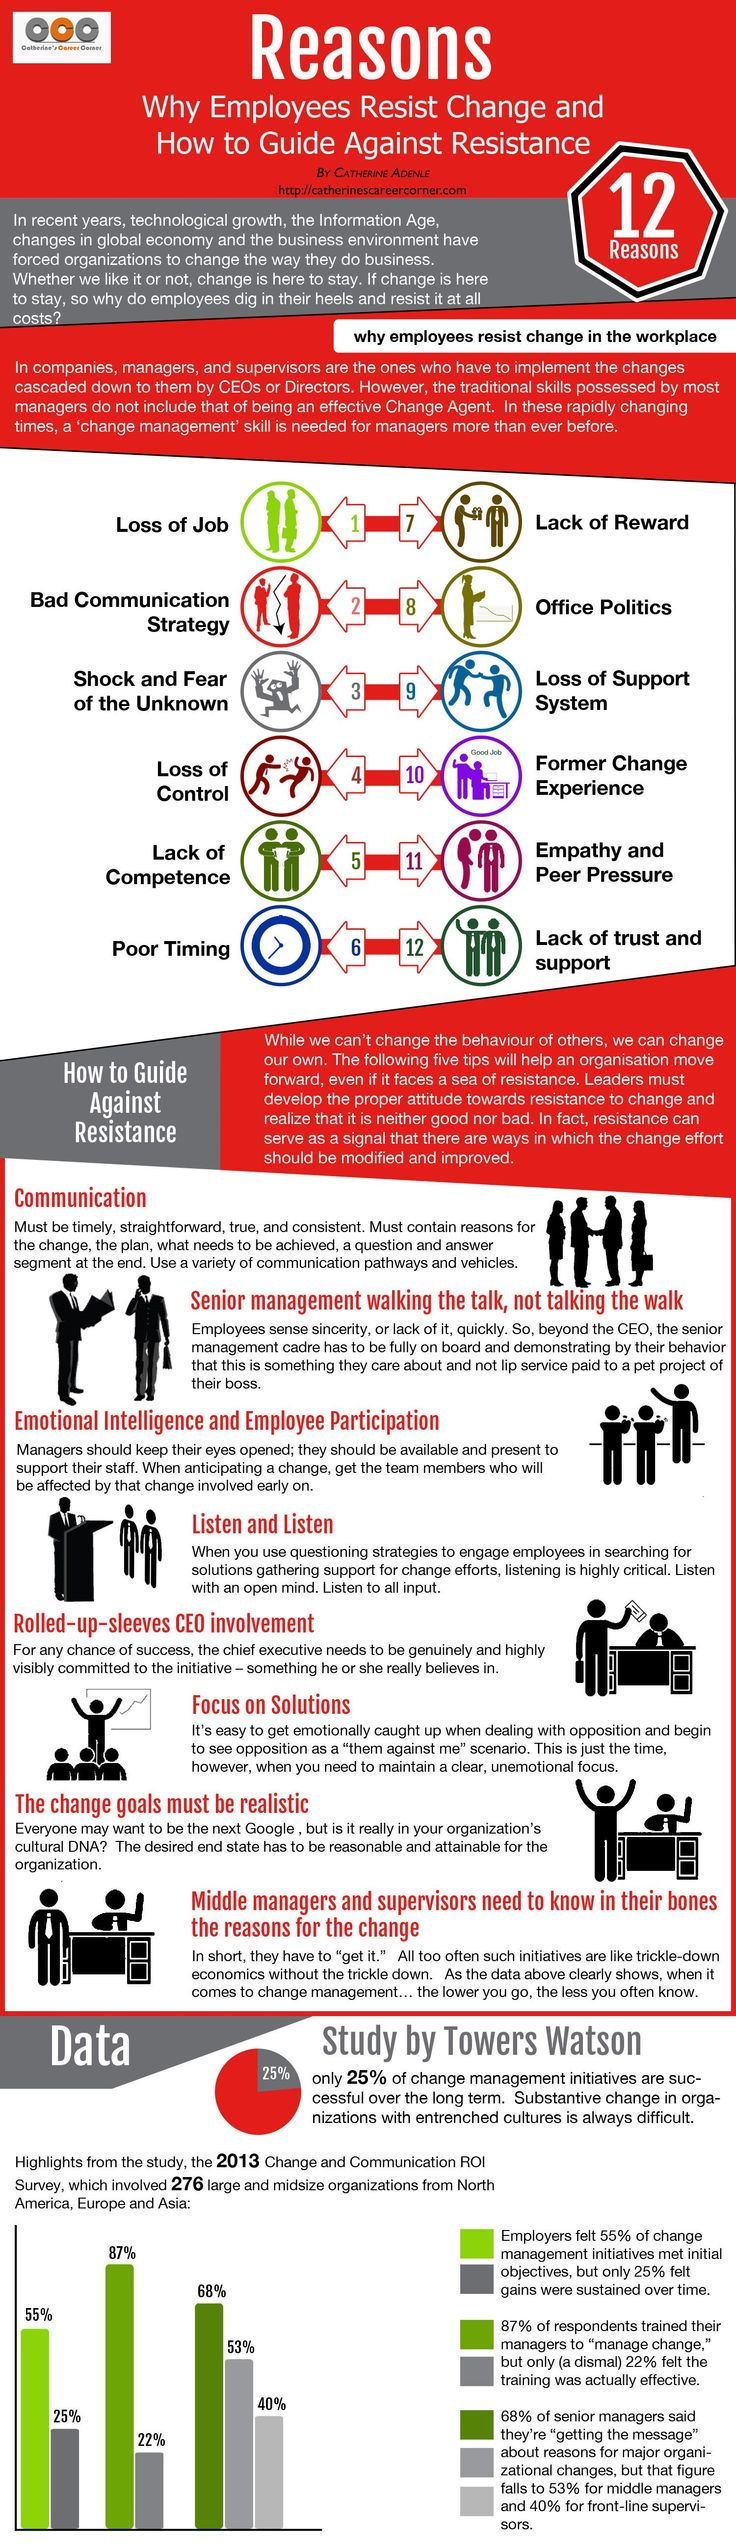 50 best change management images on pinterest comics continuing these are the reasons why employees resist change in the workplace explore why employees resist change via this infographic xflitez Choice Image